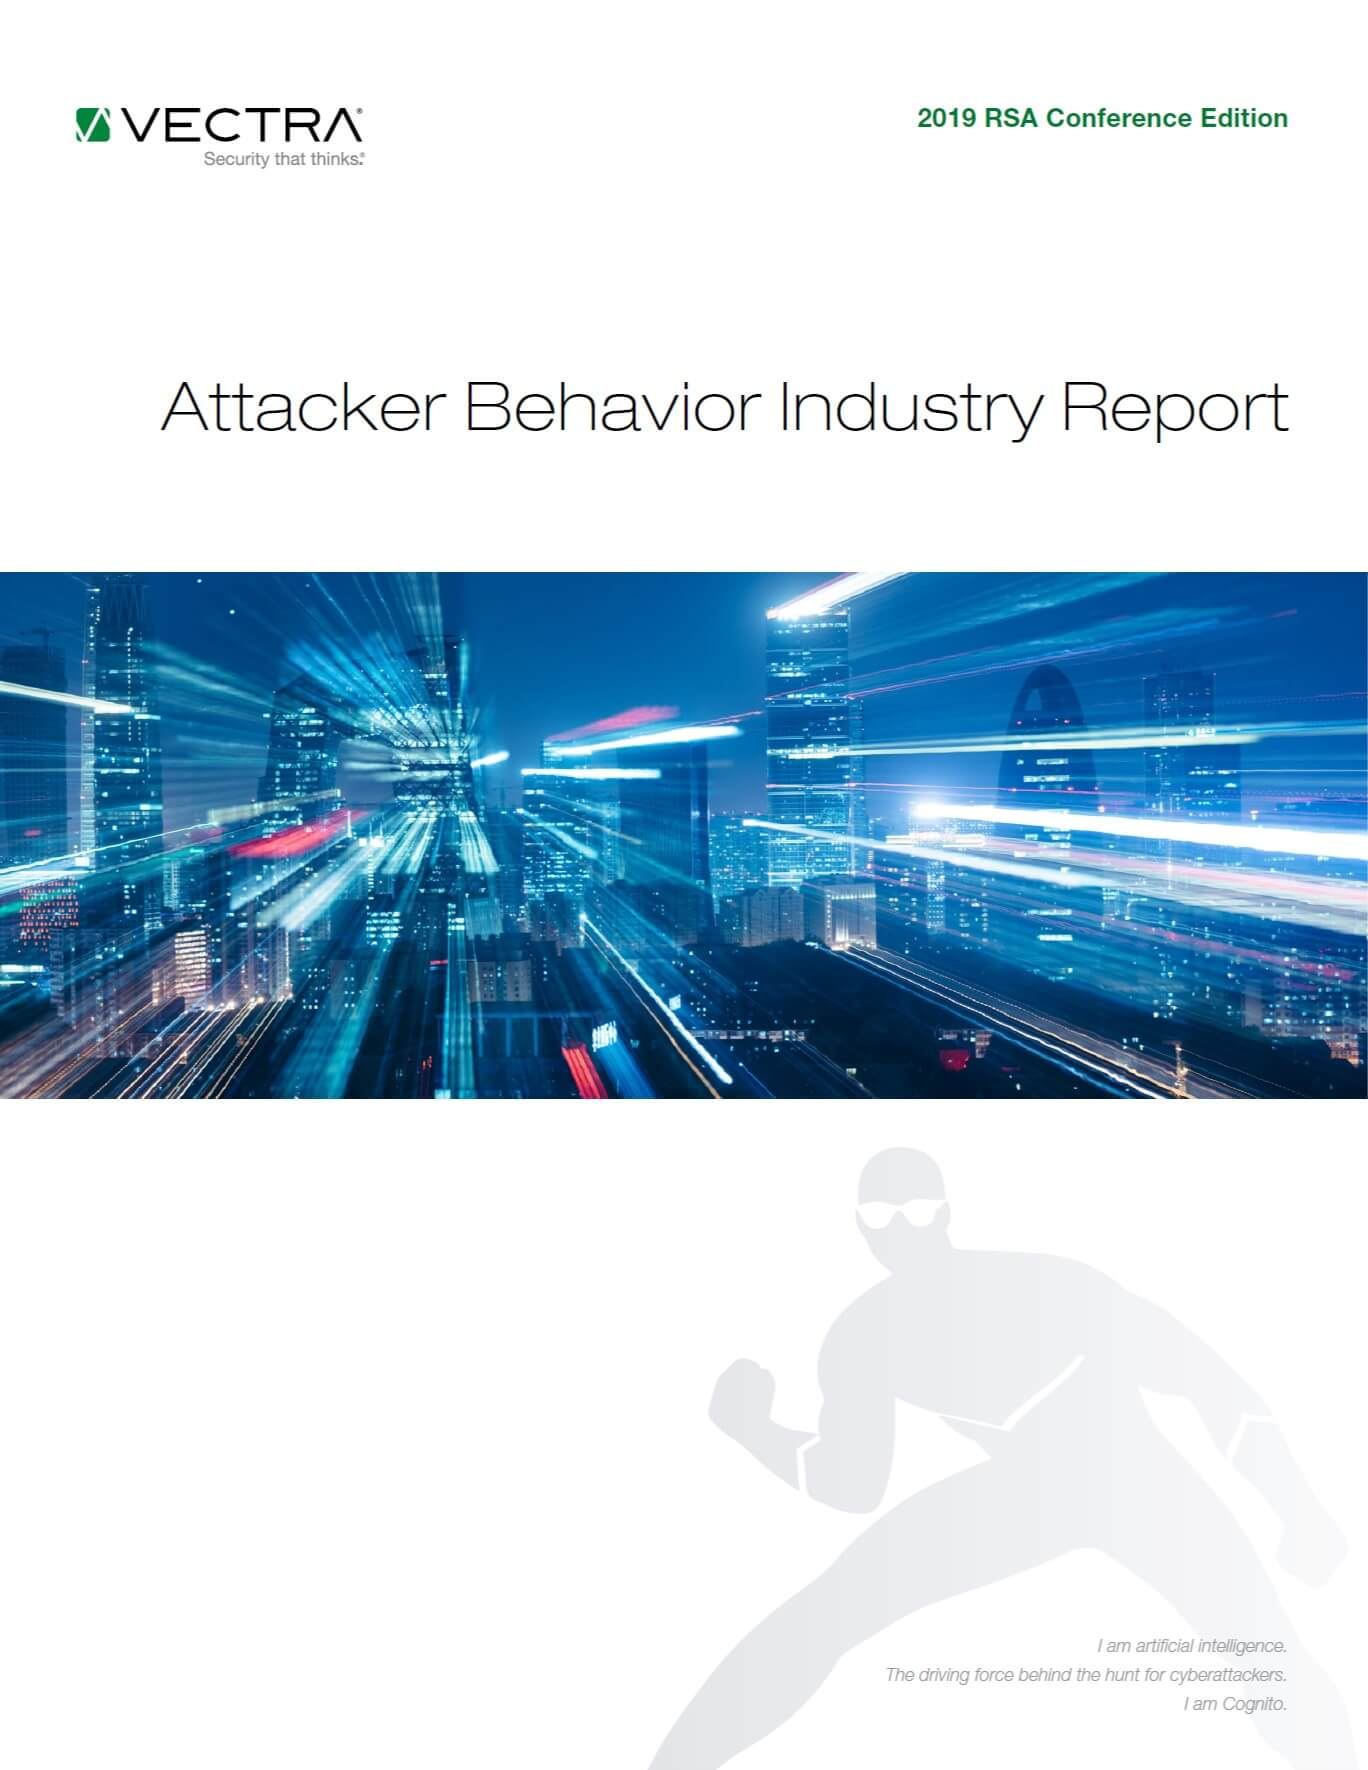 2019 RSA Conference Edition Attacker Behavior Industry Report